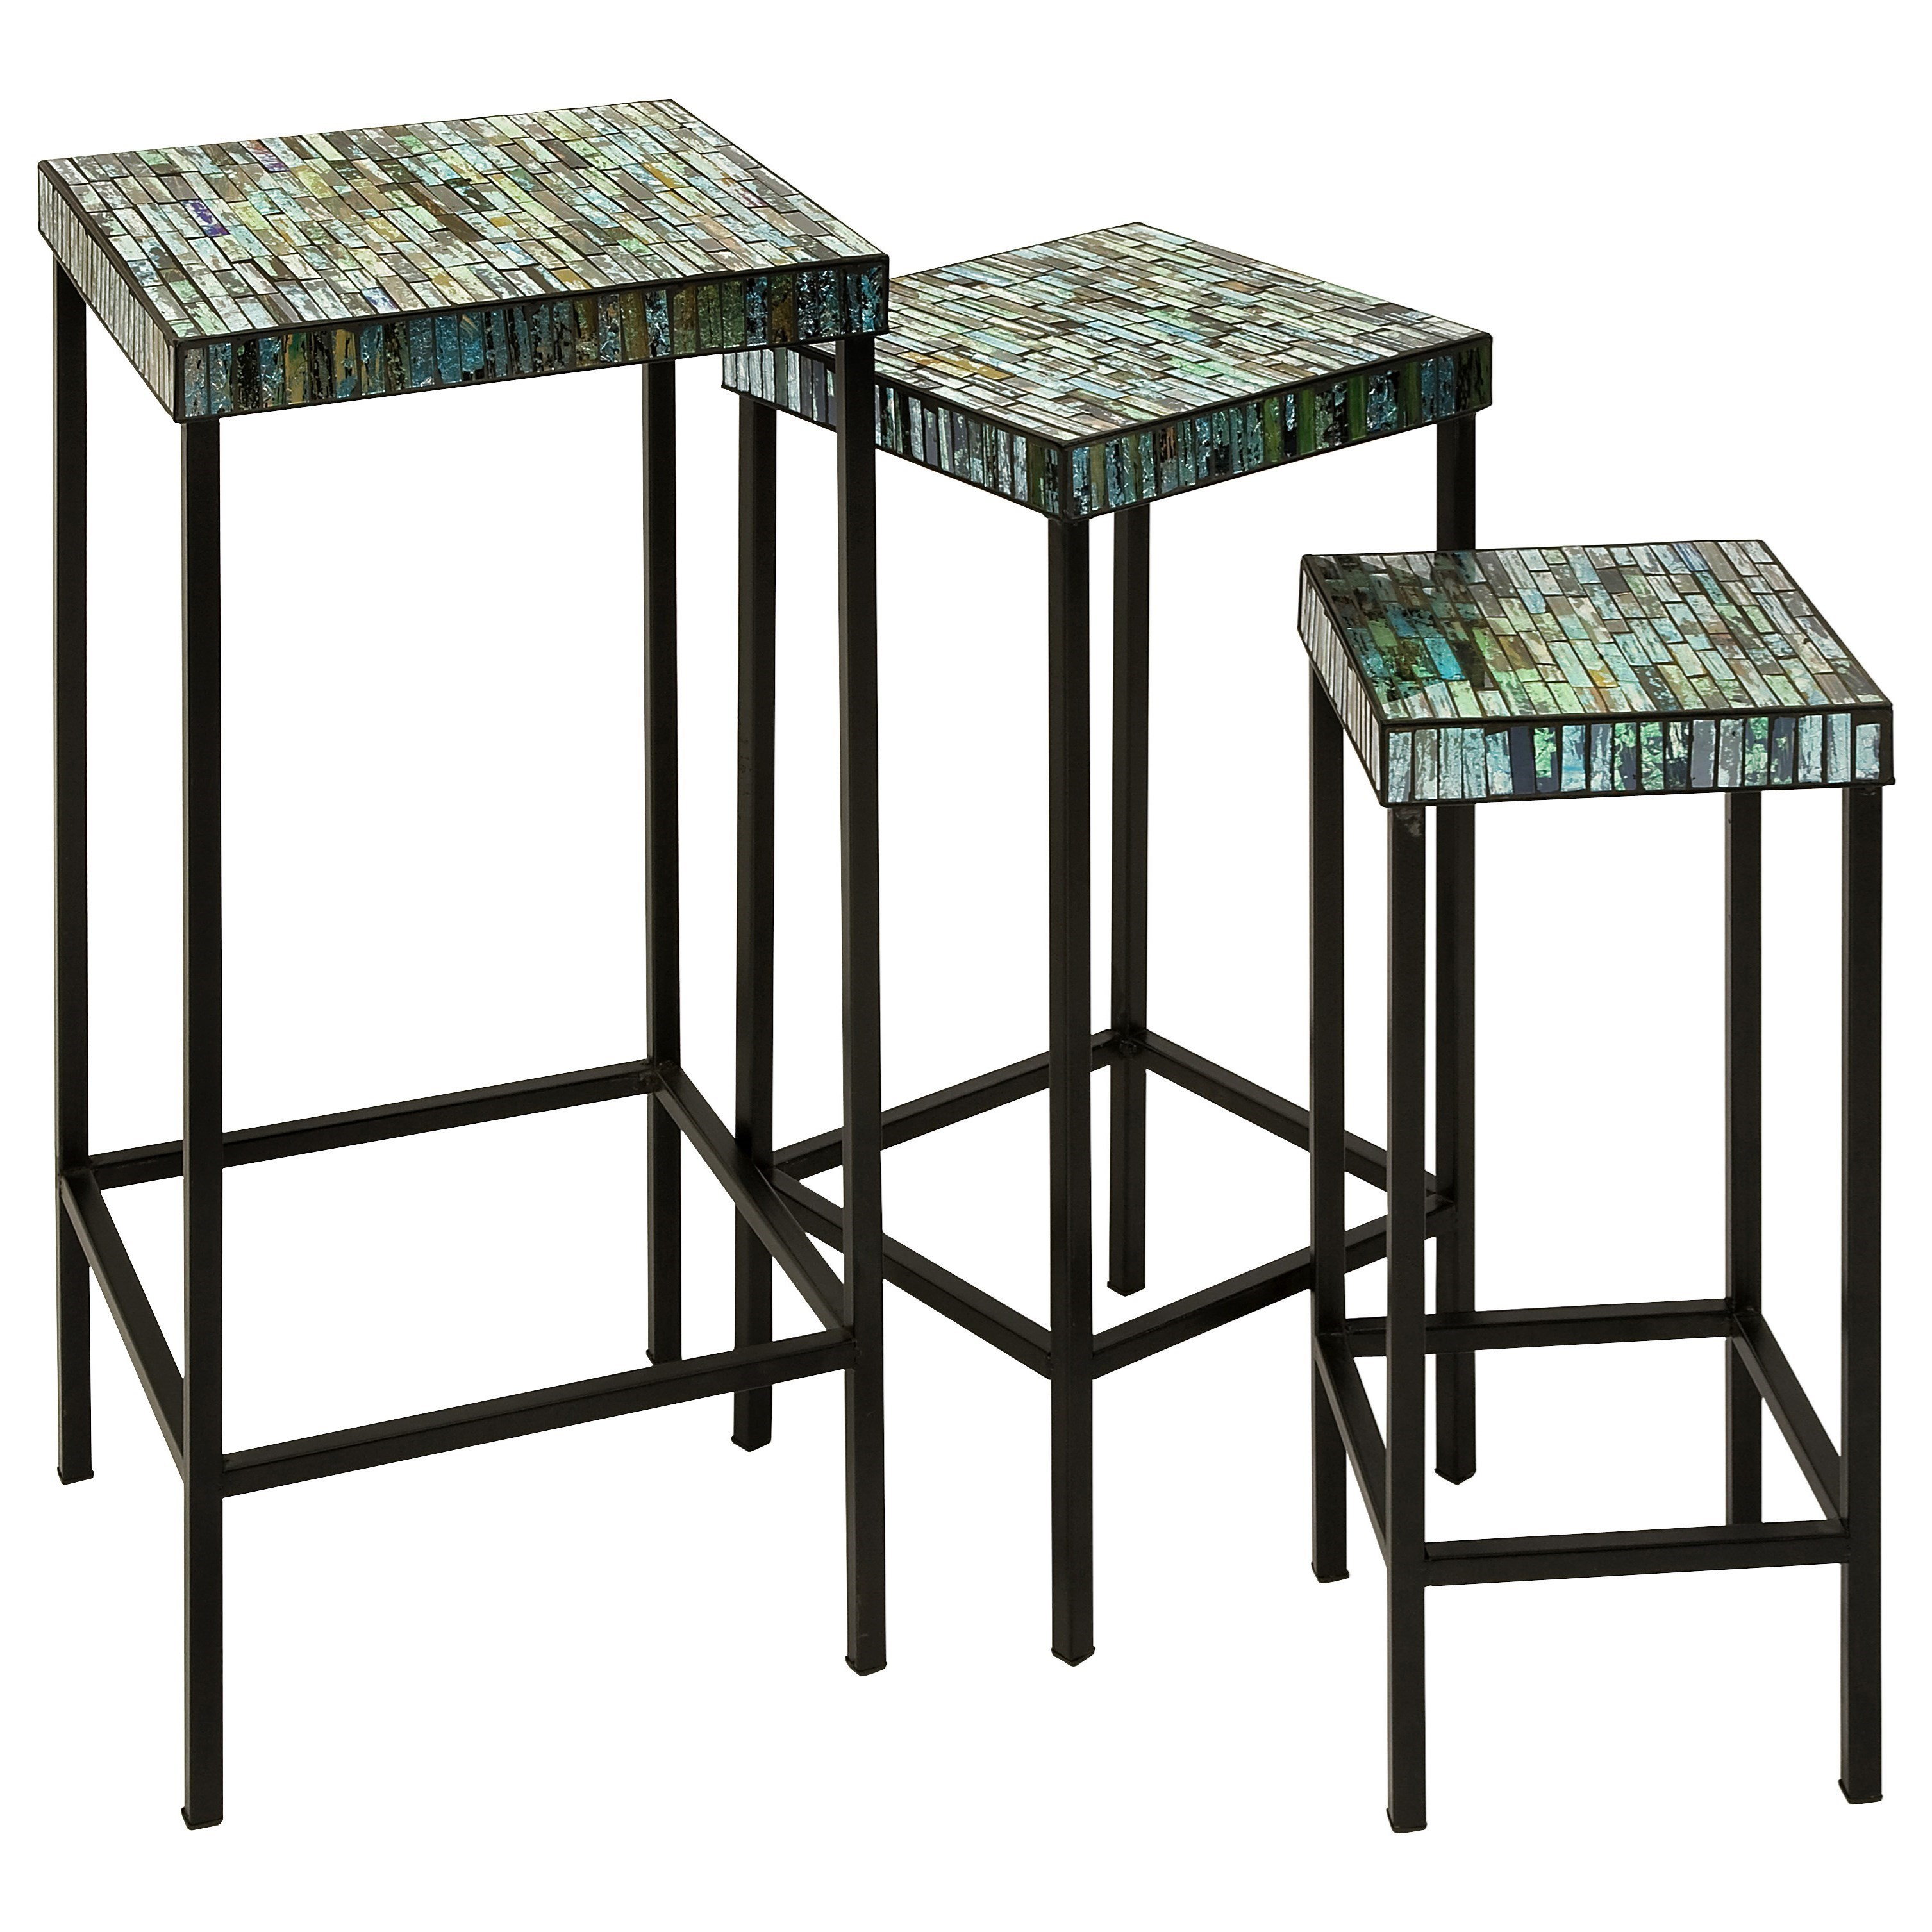 Accent Tables and Cabinets Aramis Mosaic Glass Tables - Set of 3 by IMAX Worldwide Home at Alison Craig Home Furnishings